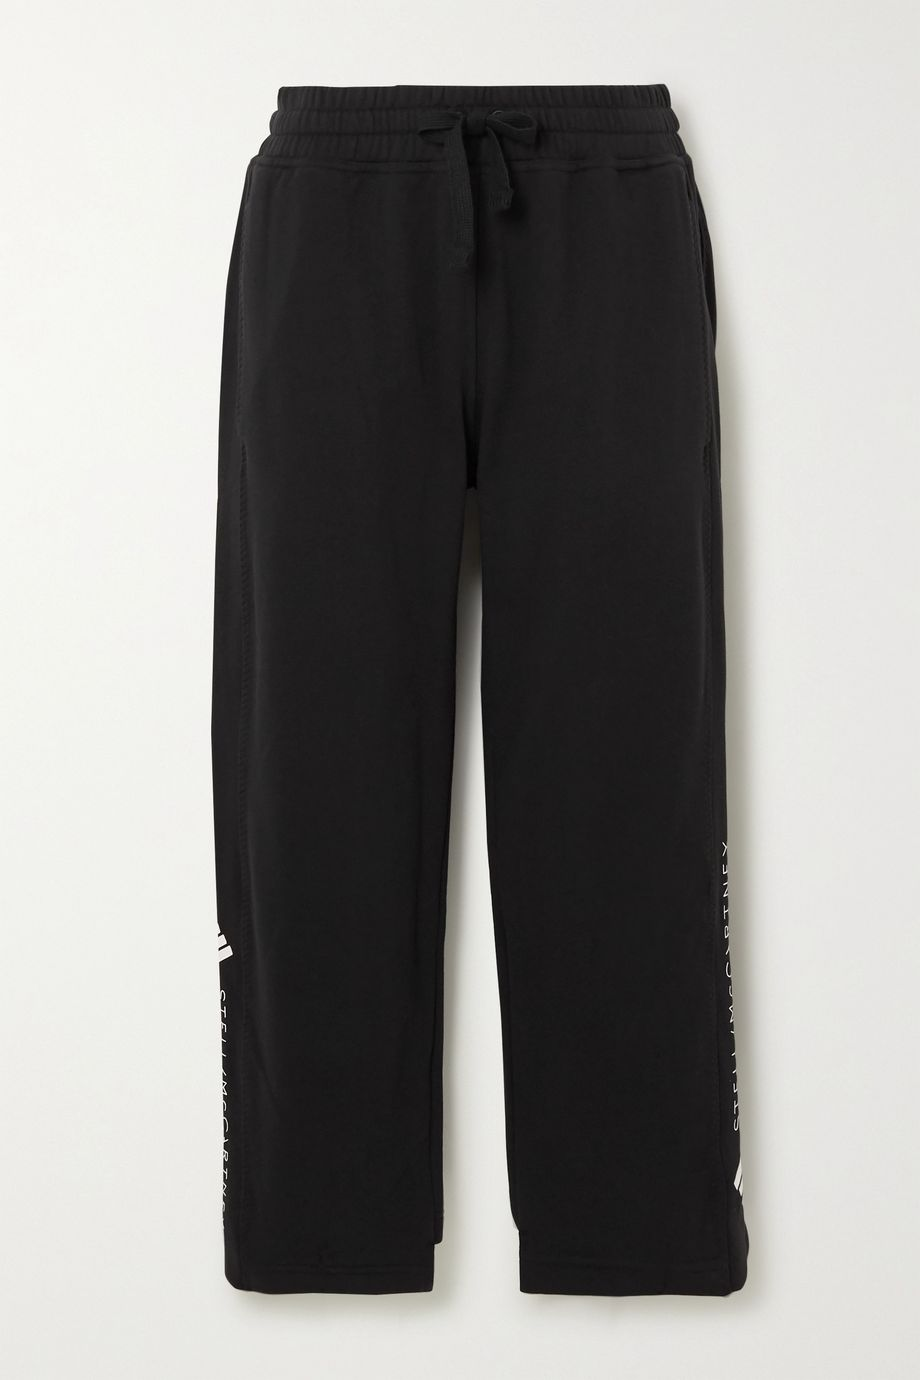 adidas by Stella McCartney Essentials printed cotton-jersey track pants